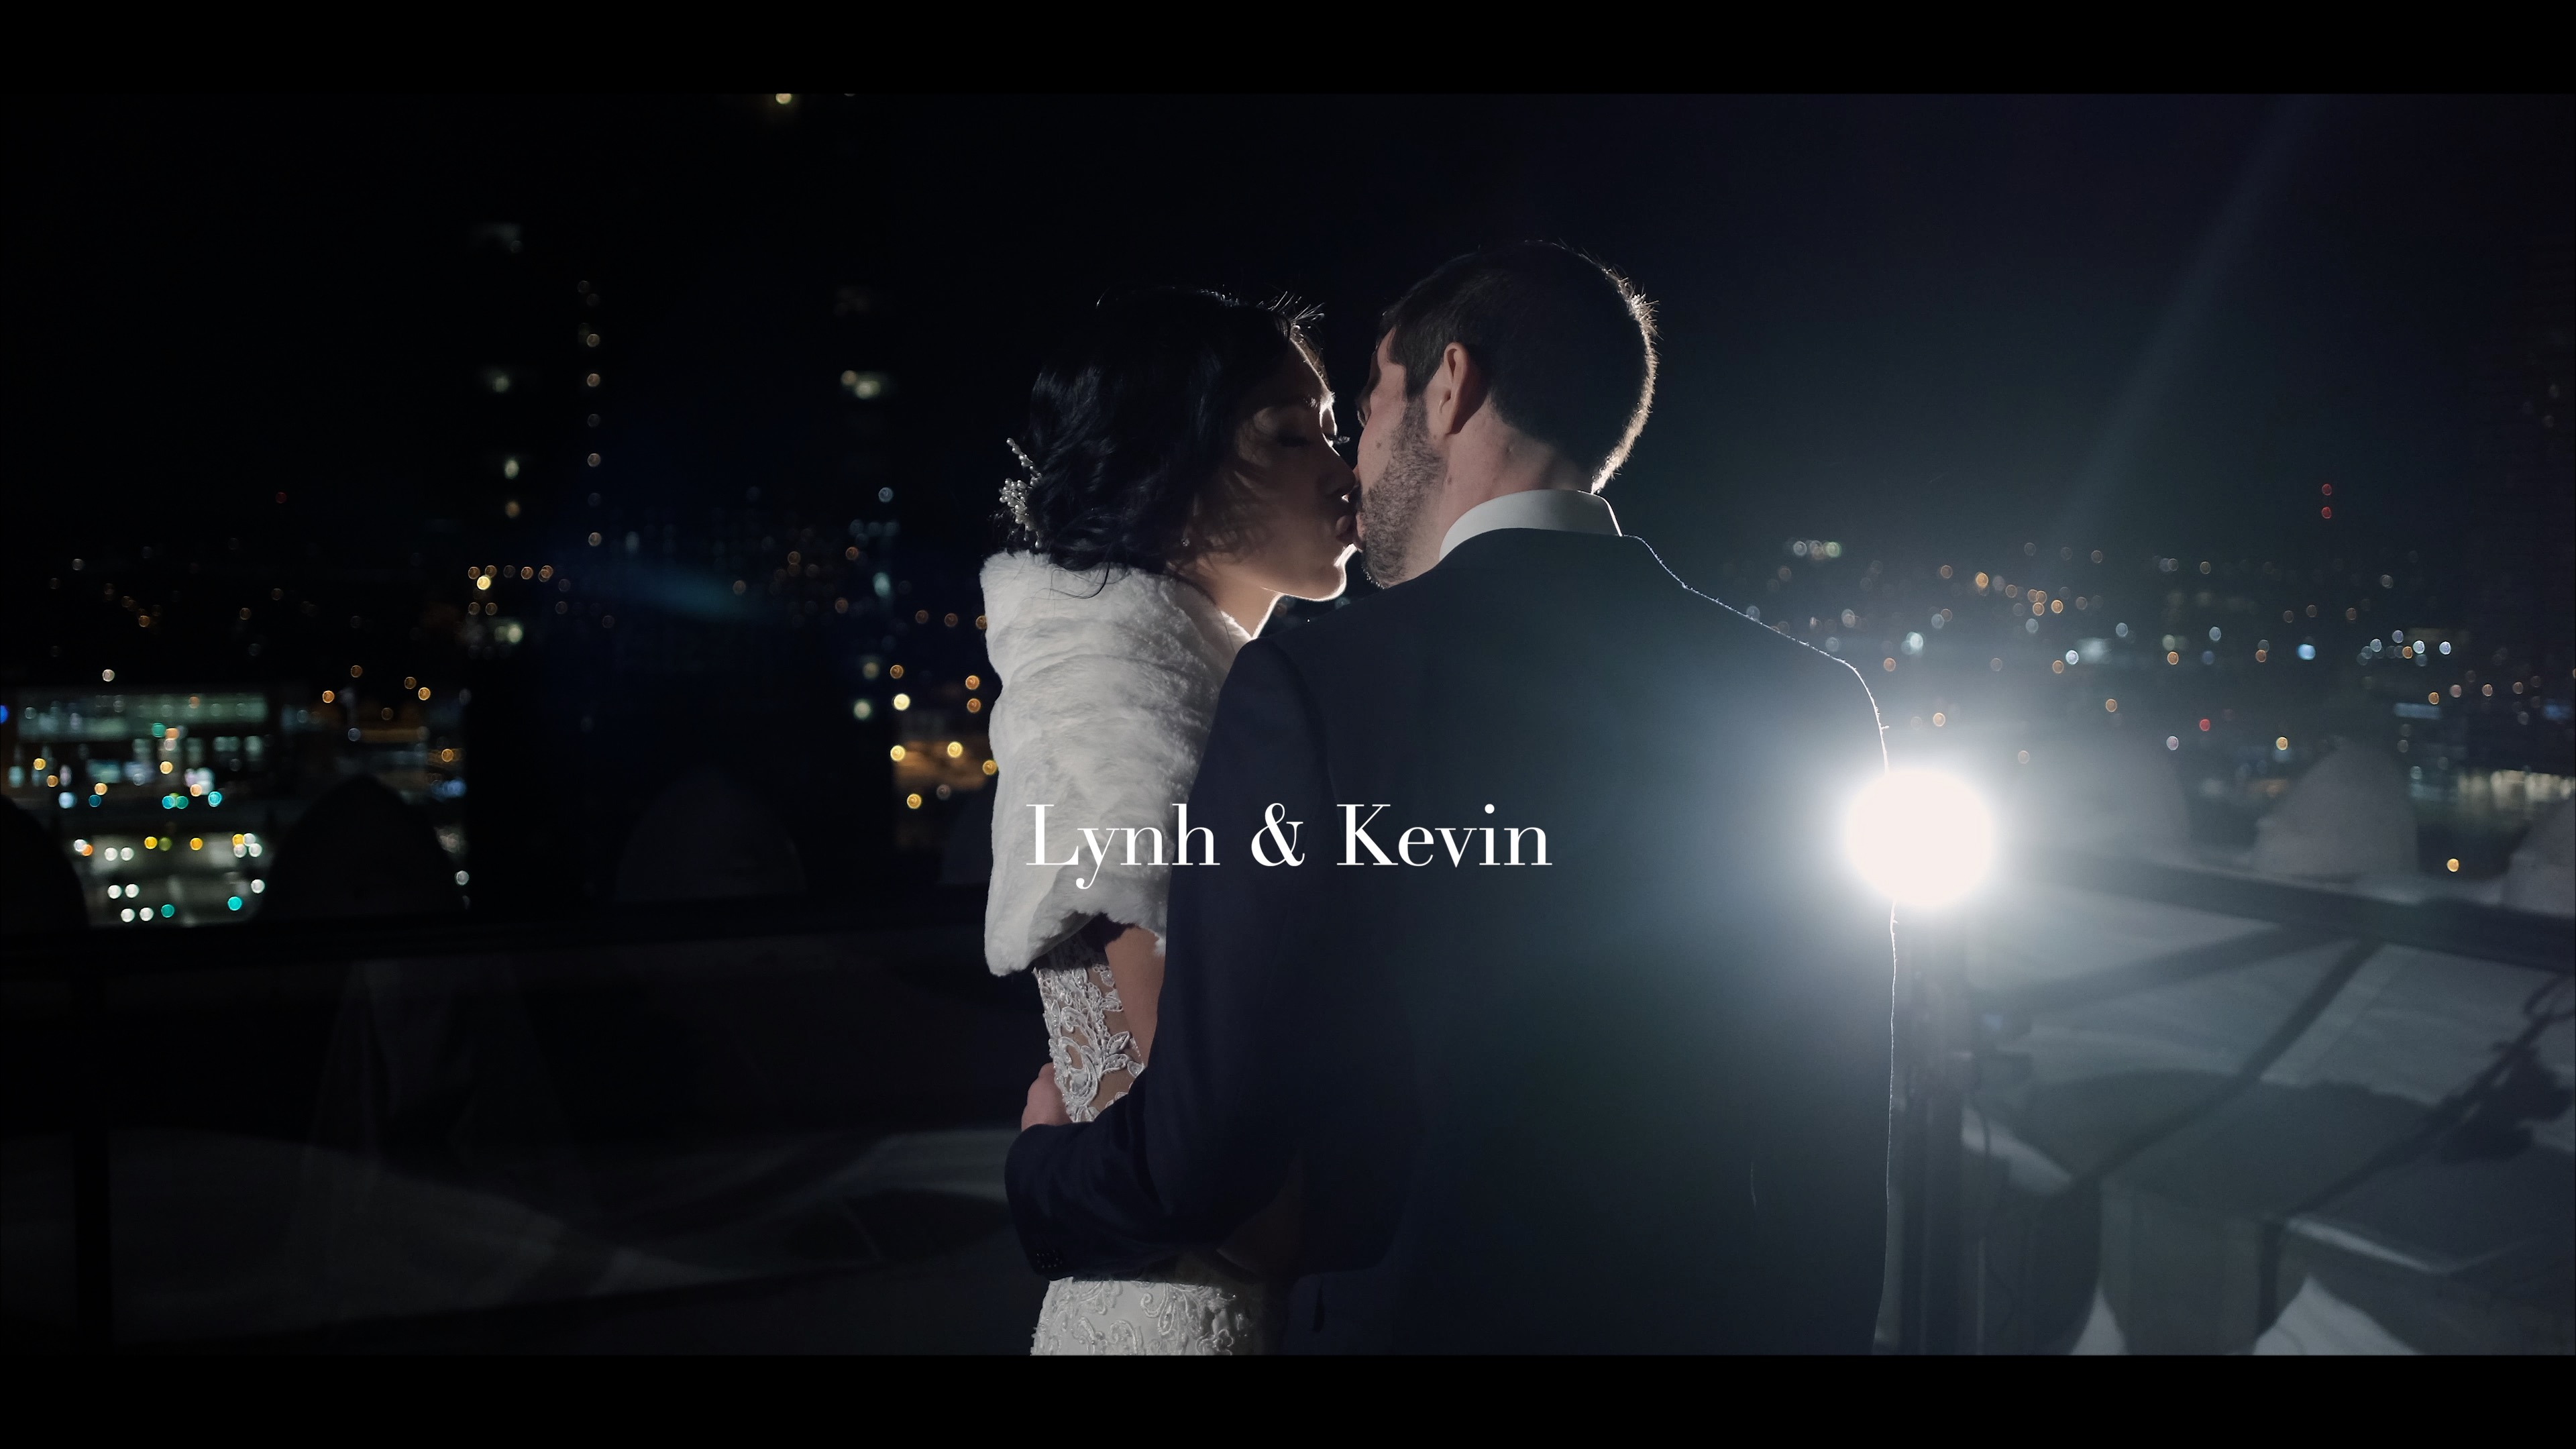 Lynh + Kevin | Grand Rapids, Michigan | Mckay Tower